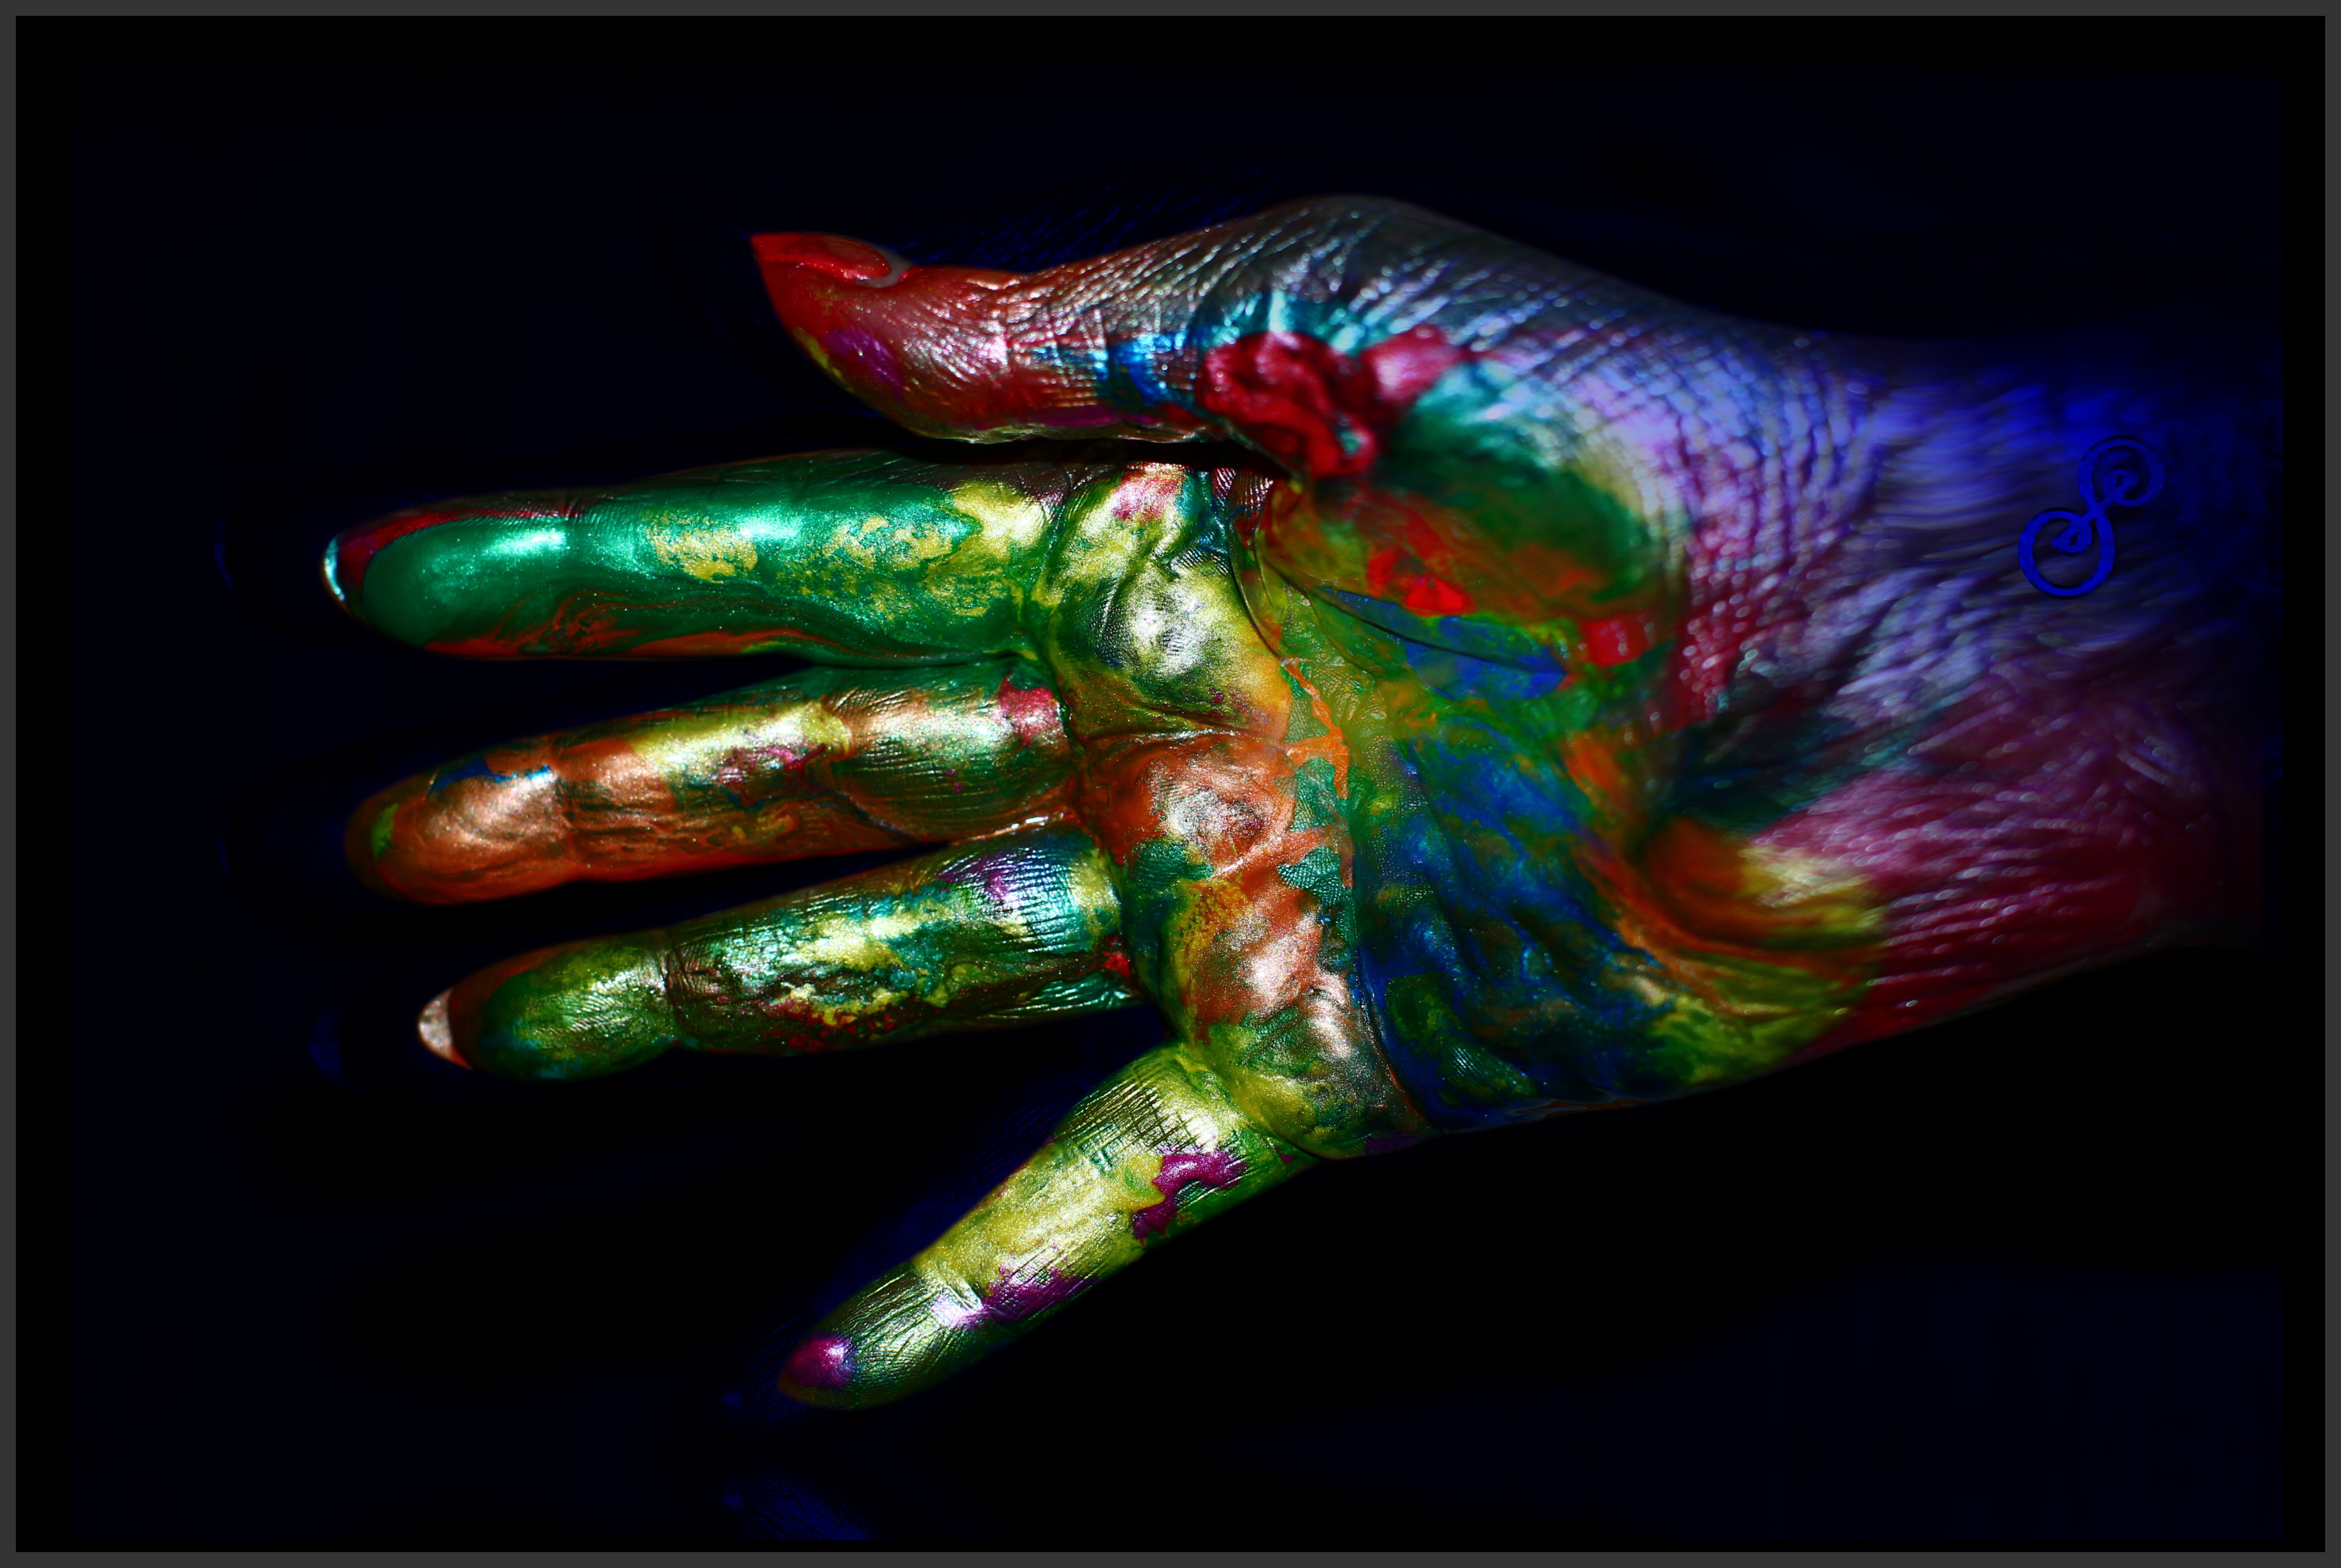 Hand covered in multi-coloured paint reaching out for a hand shake photograph on black background